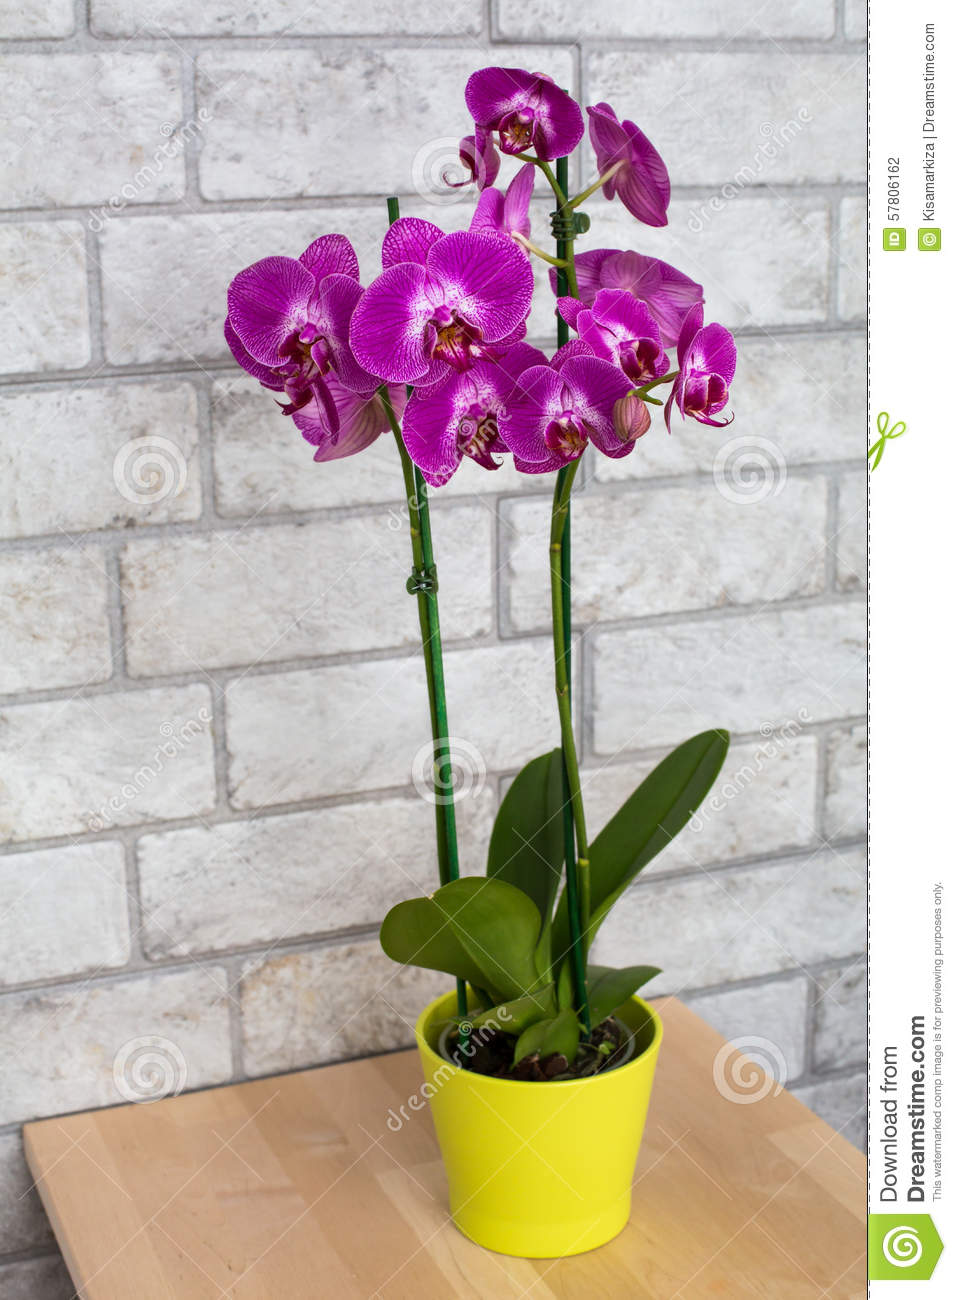 indoor purple orchid in the flower pot stock photo image 57806162. Black Bedroom Furniture Sets. Home Design Ideas